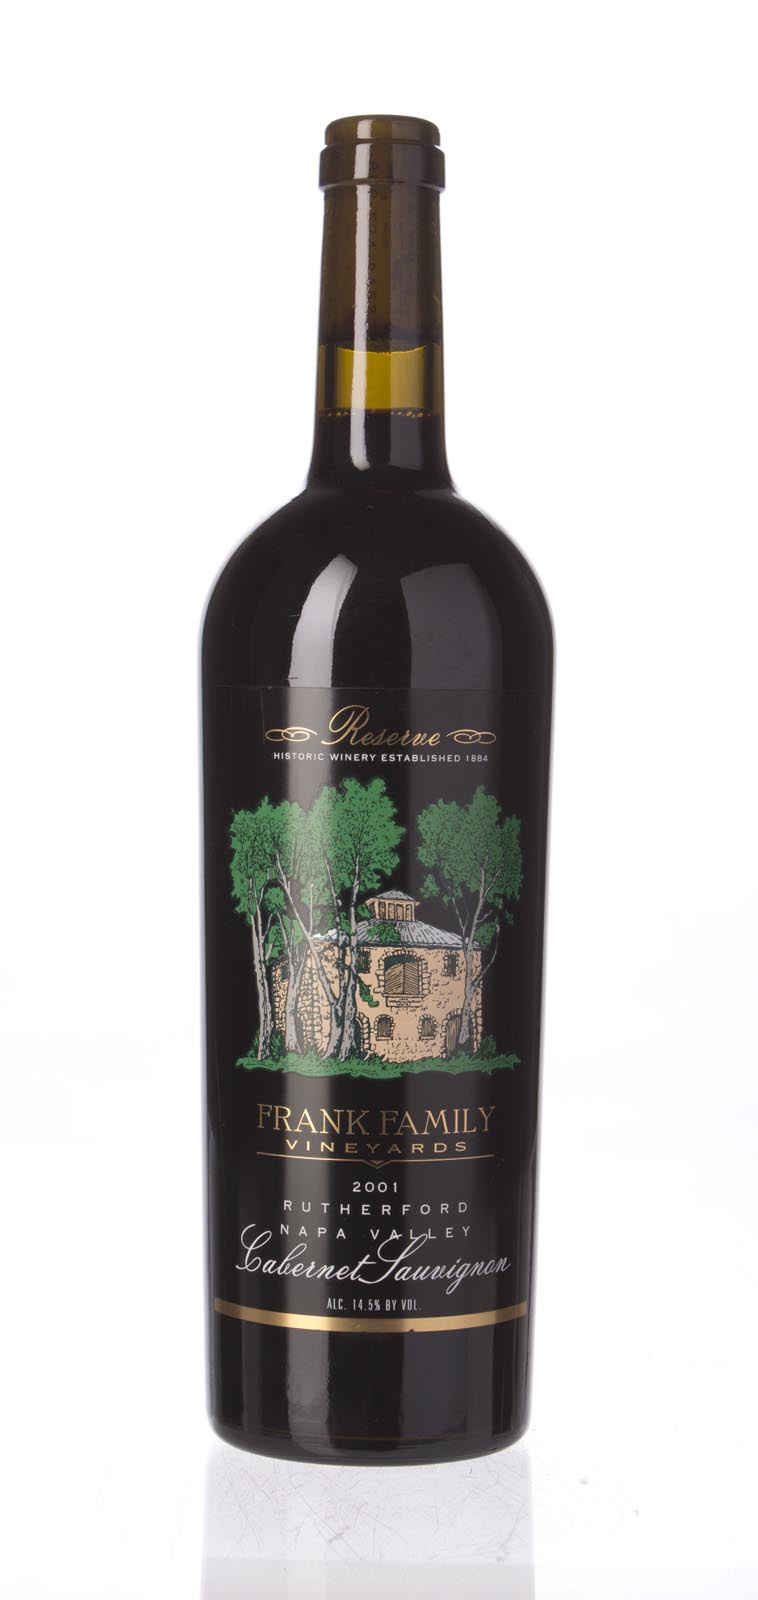 Frank Family Cabernet Sauvignon Rutherford Reserve 2001, 750ml (WA88) from The BPW - Merchants of rare and fine wines.